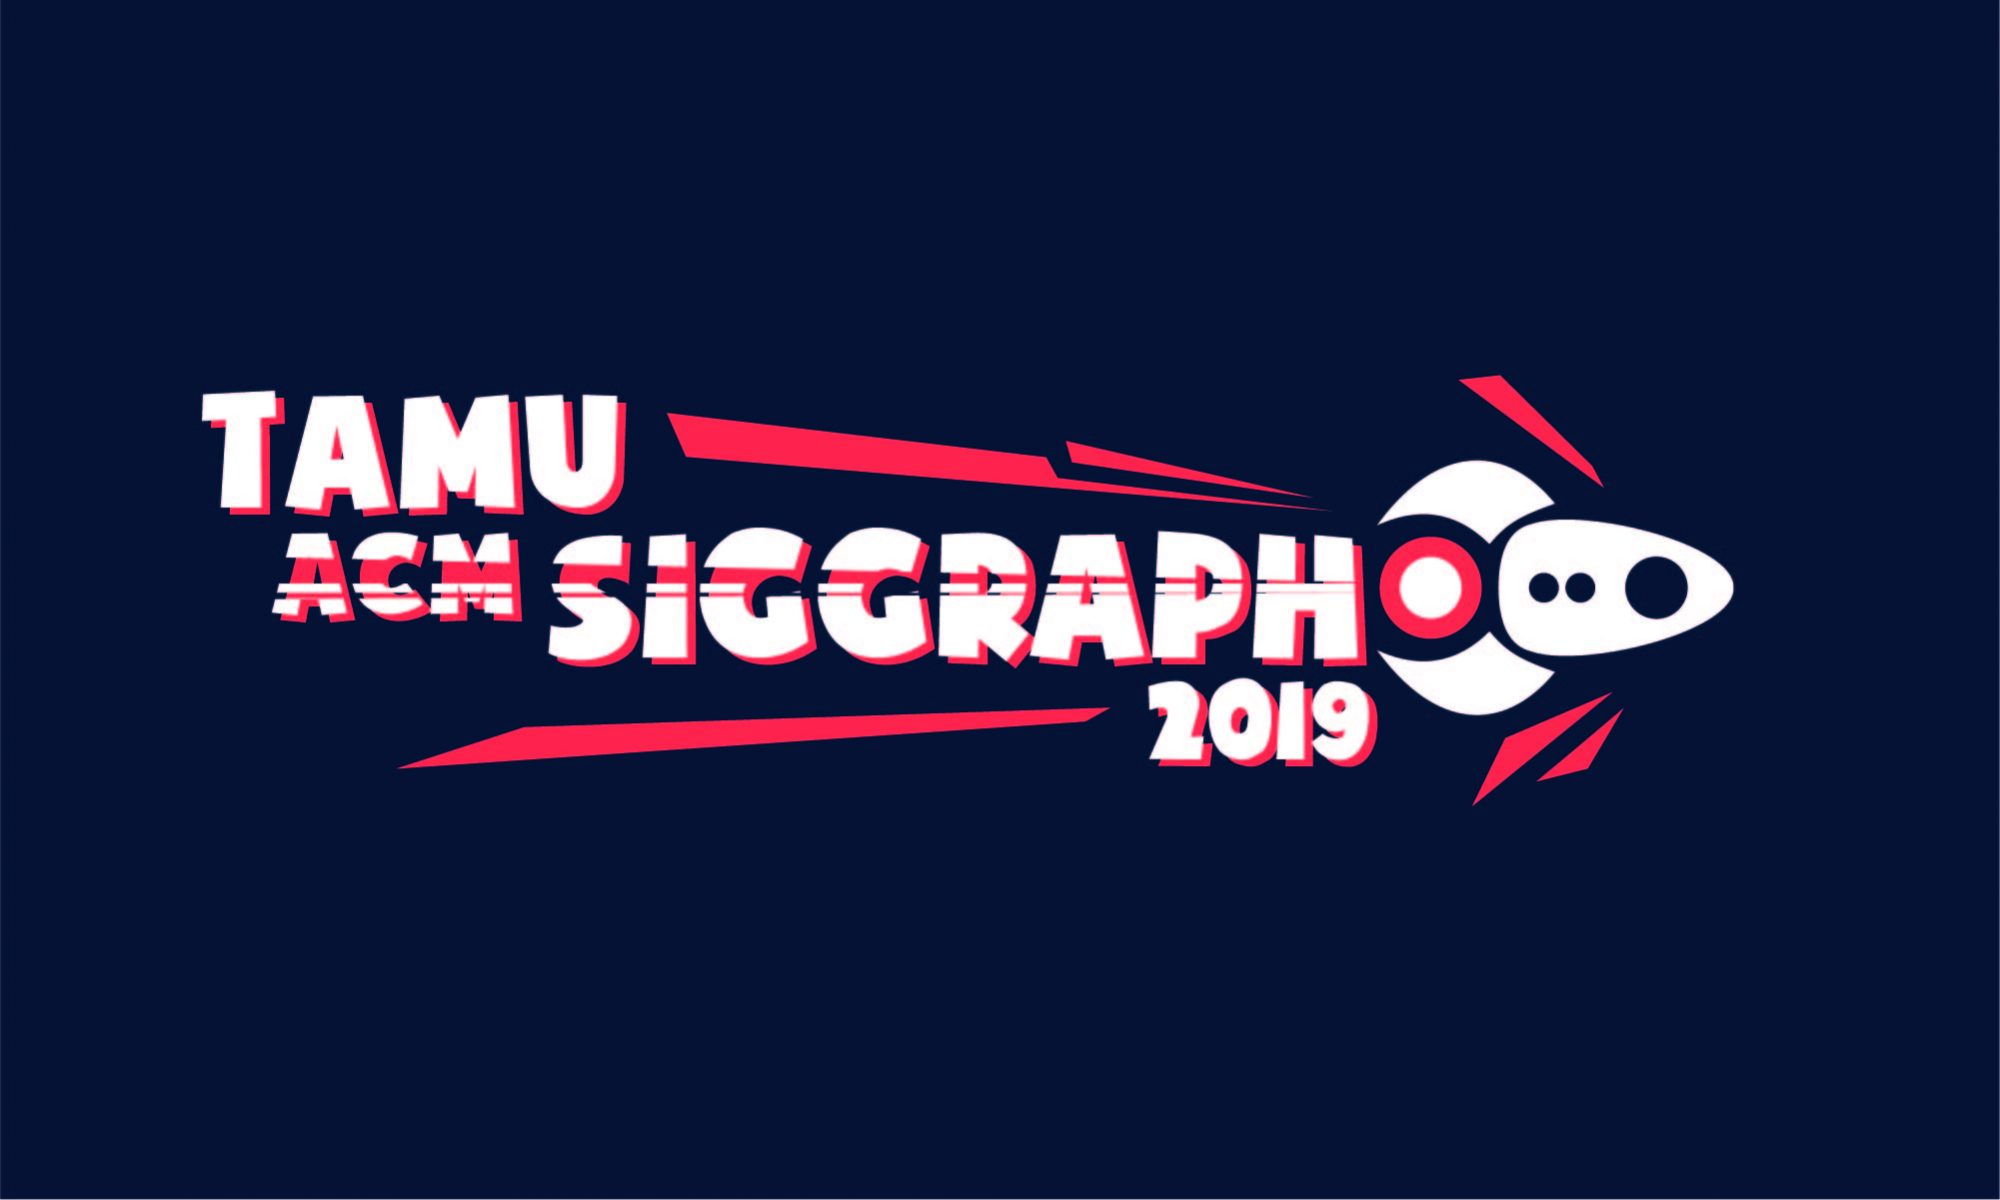 Texas A&M University ACM SIGGRAPH